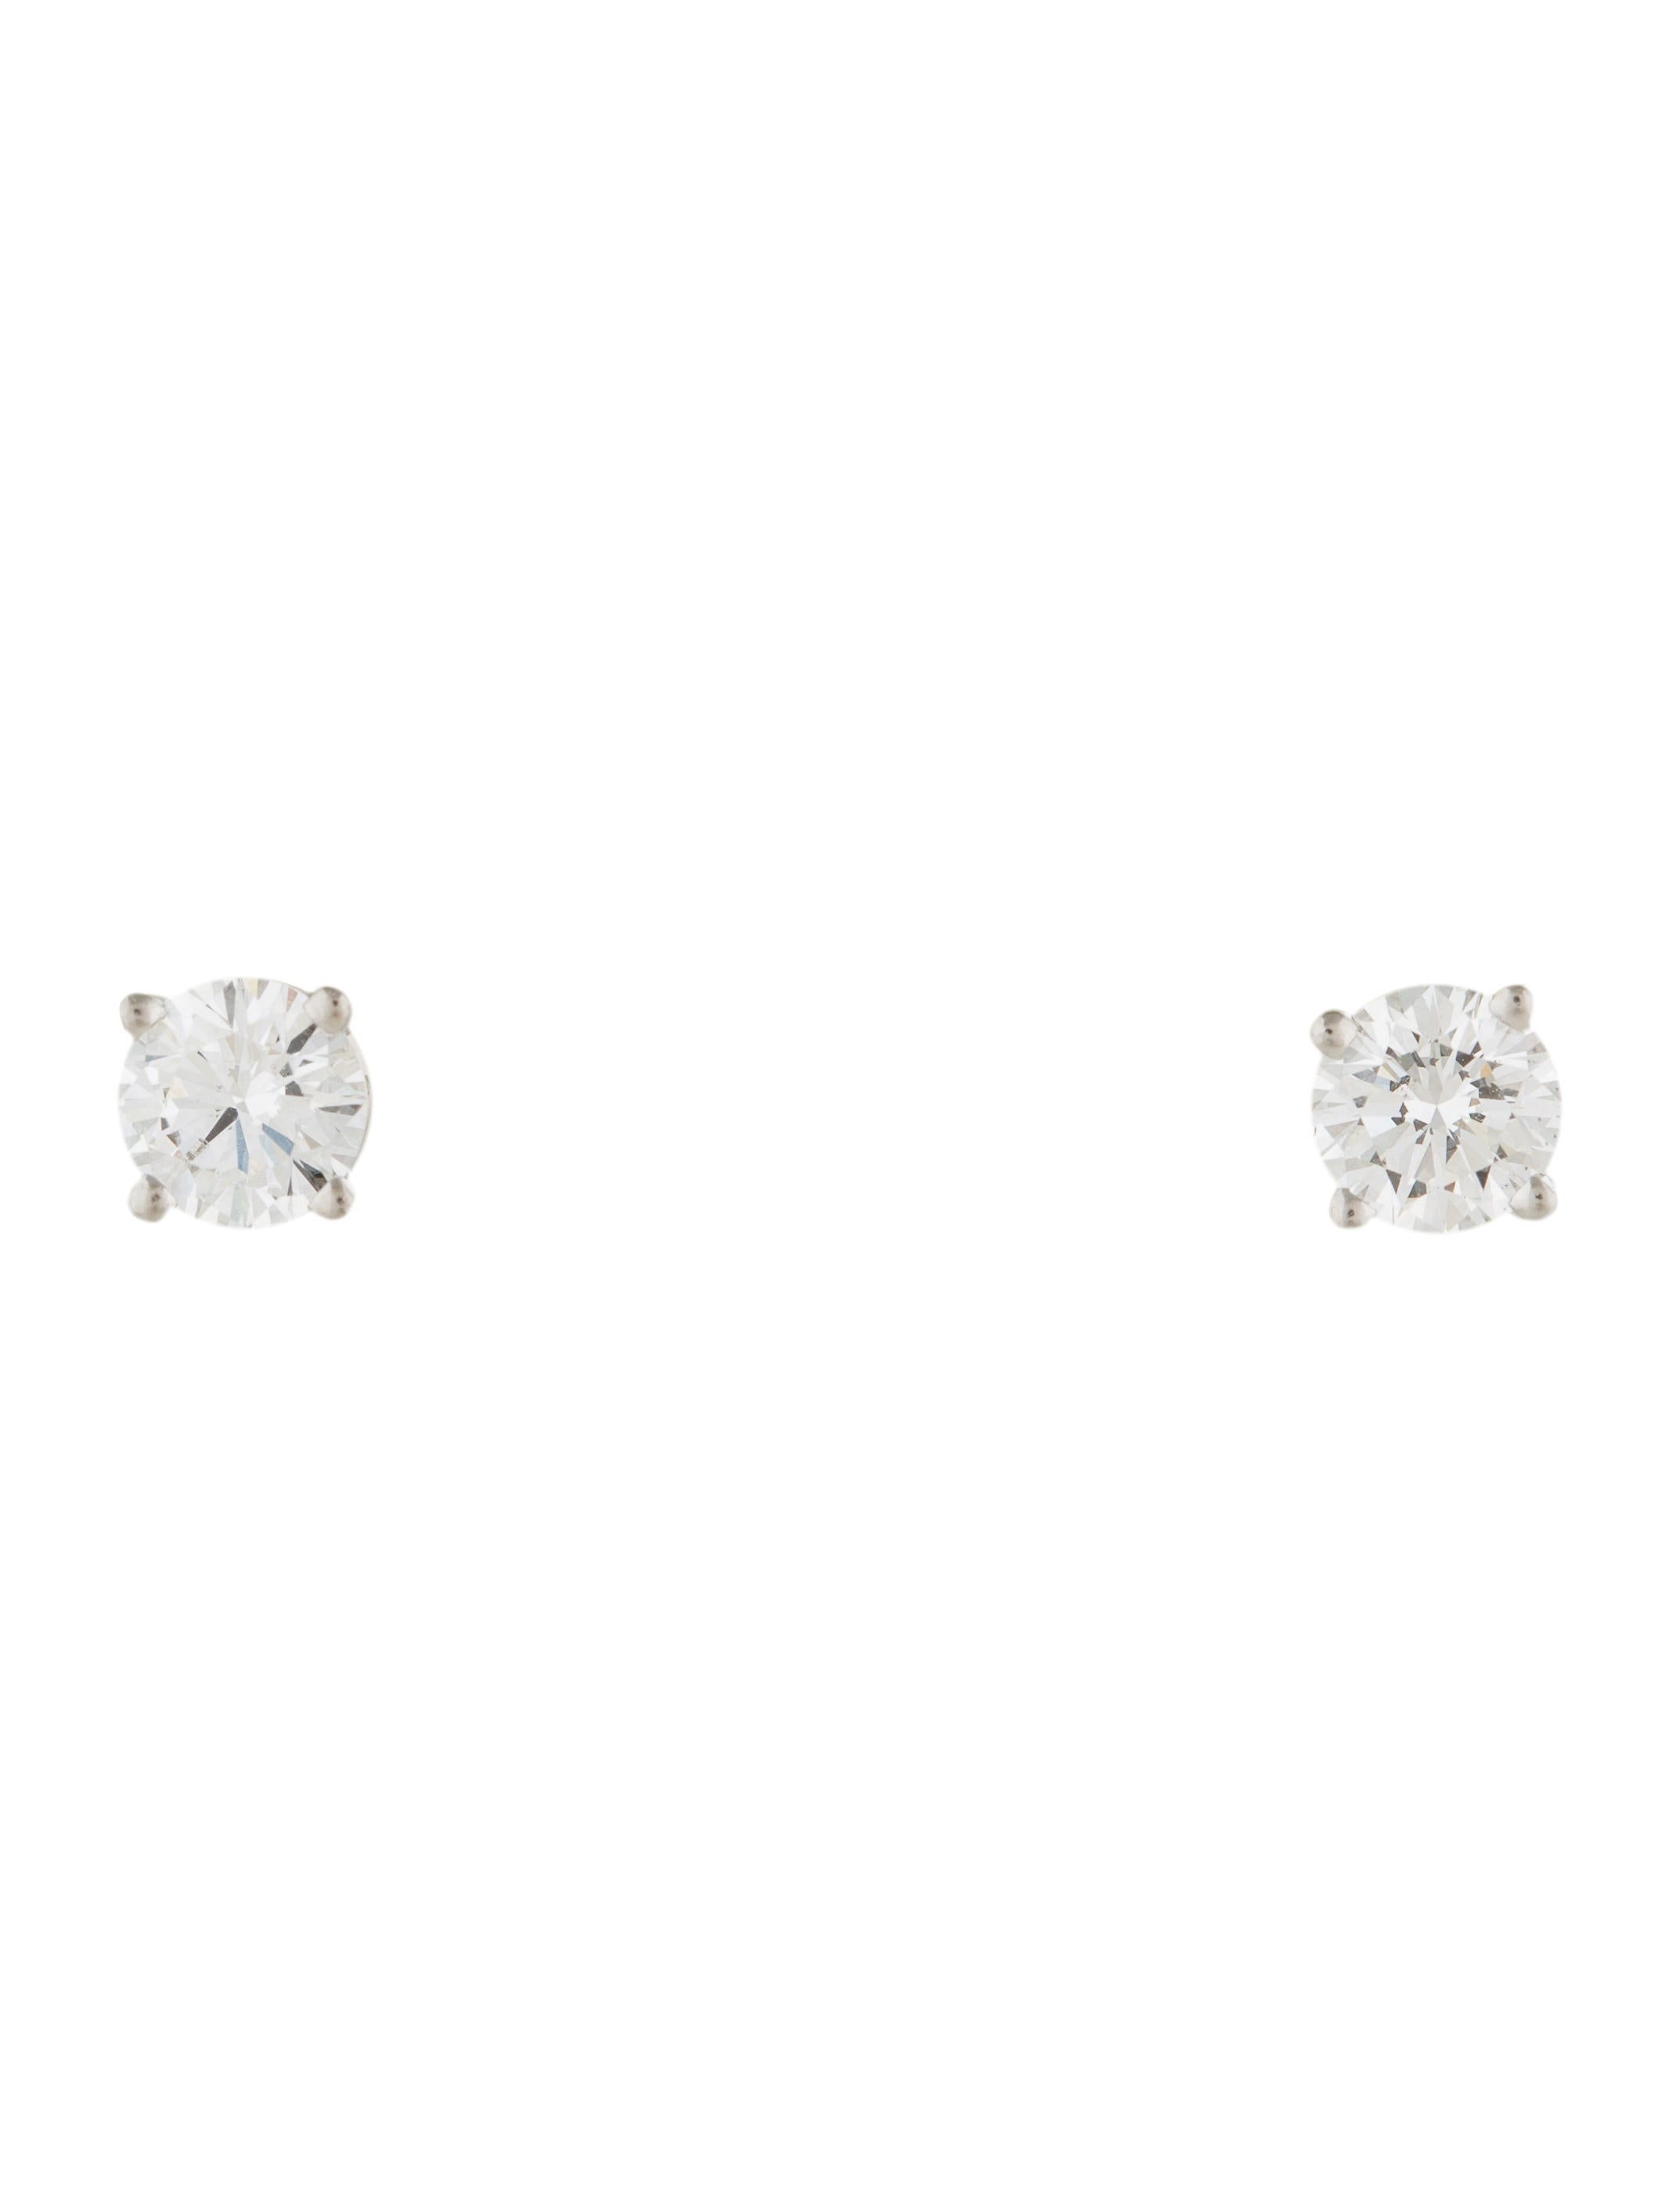 t ip earrings cut diamond silver solitaire stud walmart princess w com sterling carat miabella